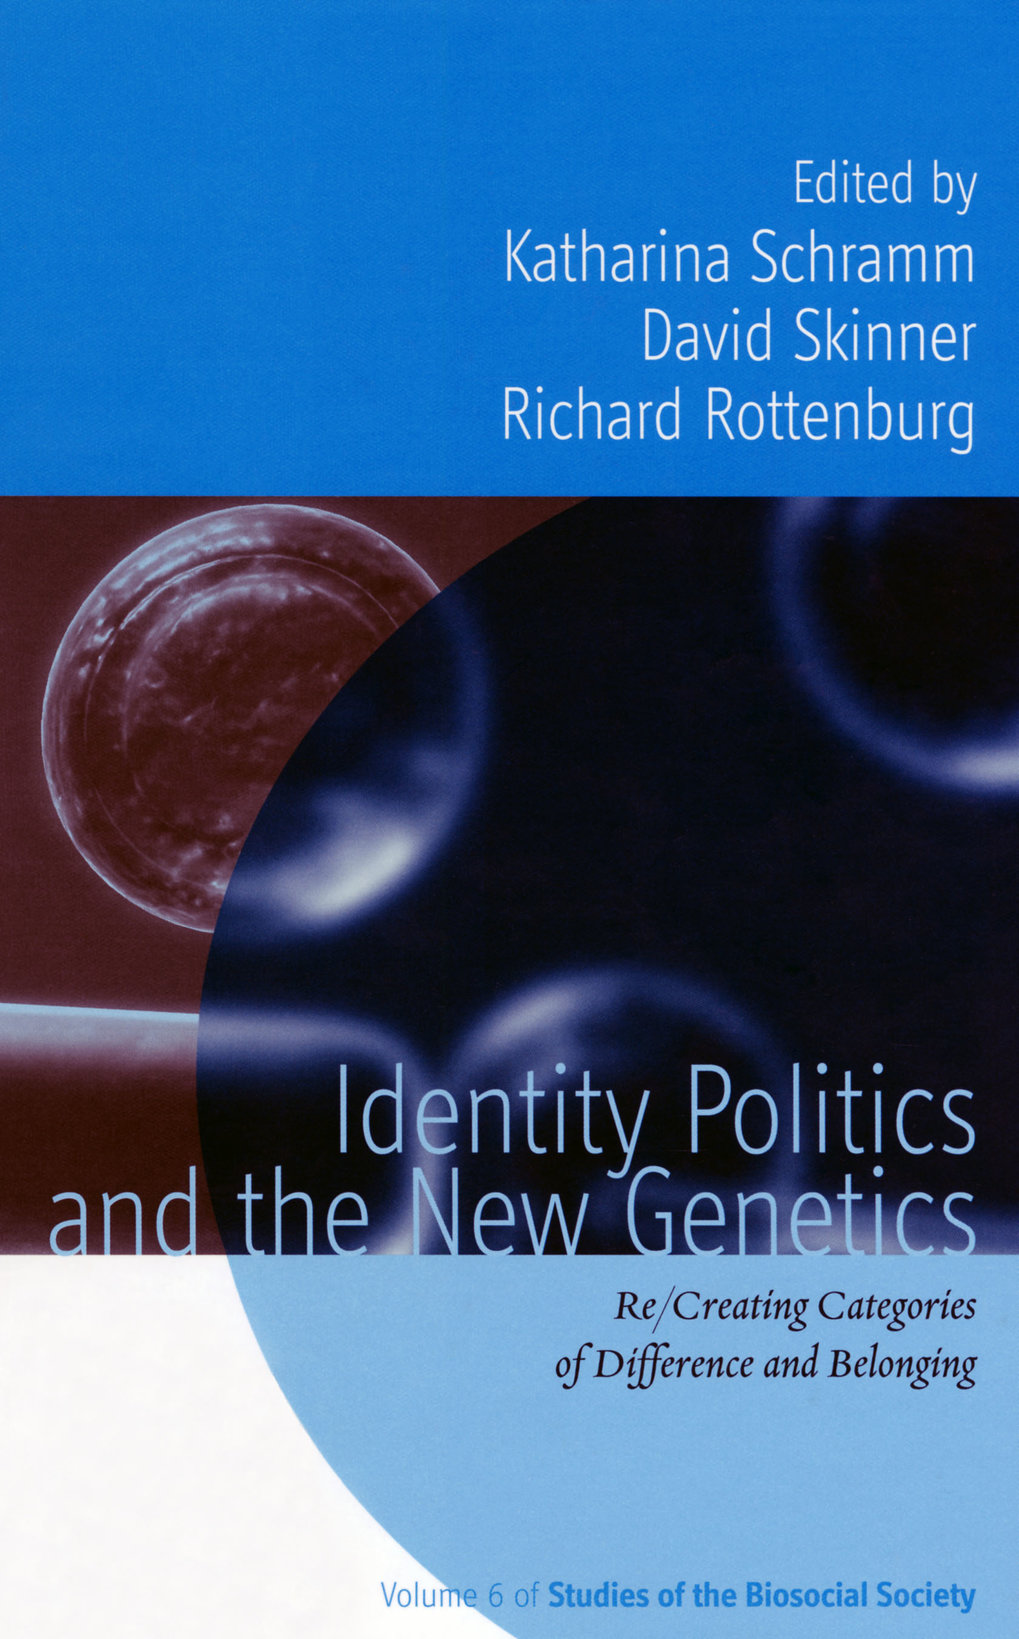 Identity Politics and the New Genetics. Re/Creating categories of difference and belonging